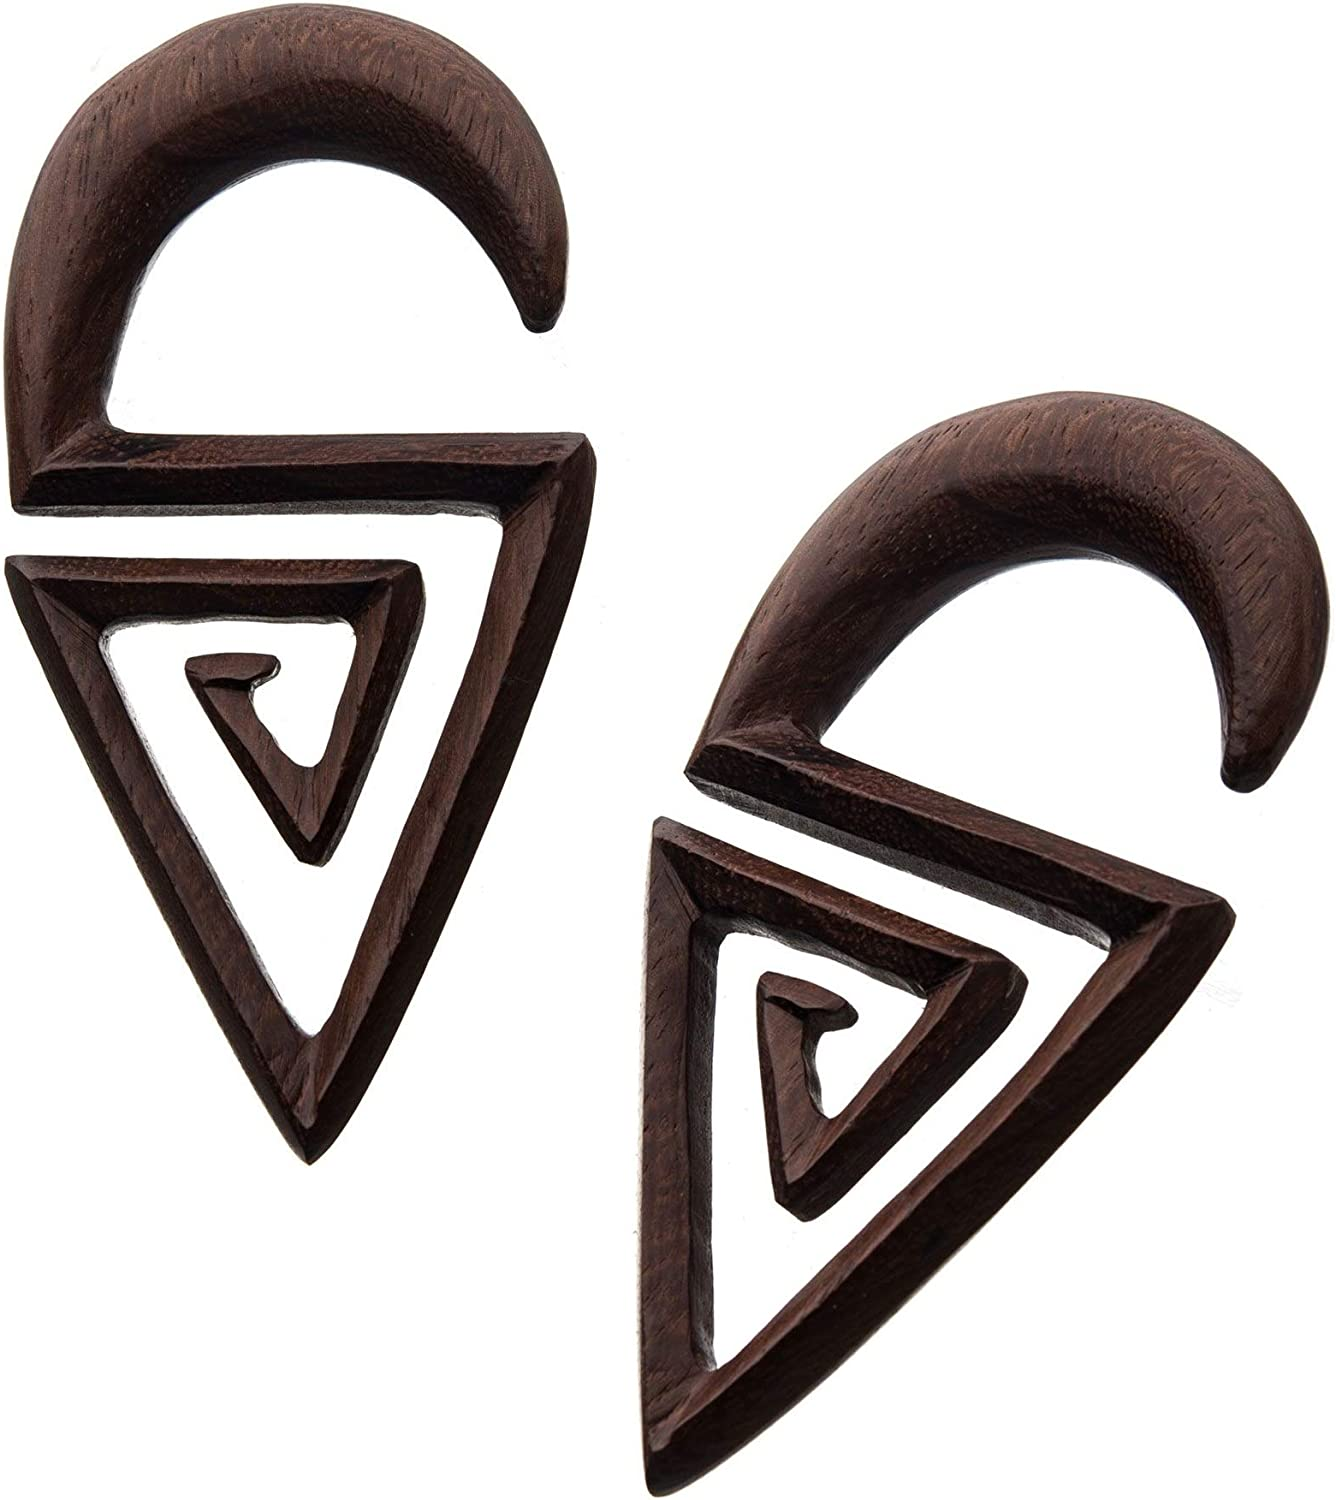 Pierced Owl Hand Carved Sono Wood Aztec Triangle Spiral Hanger Plugs, Sold as a Pair